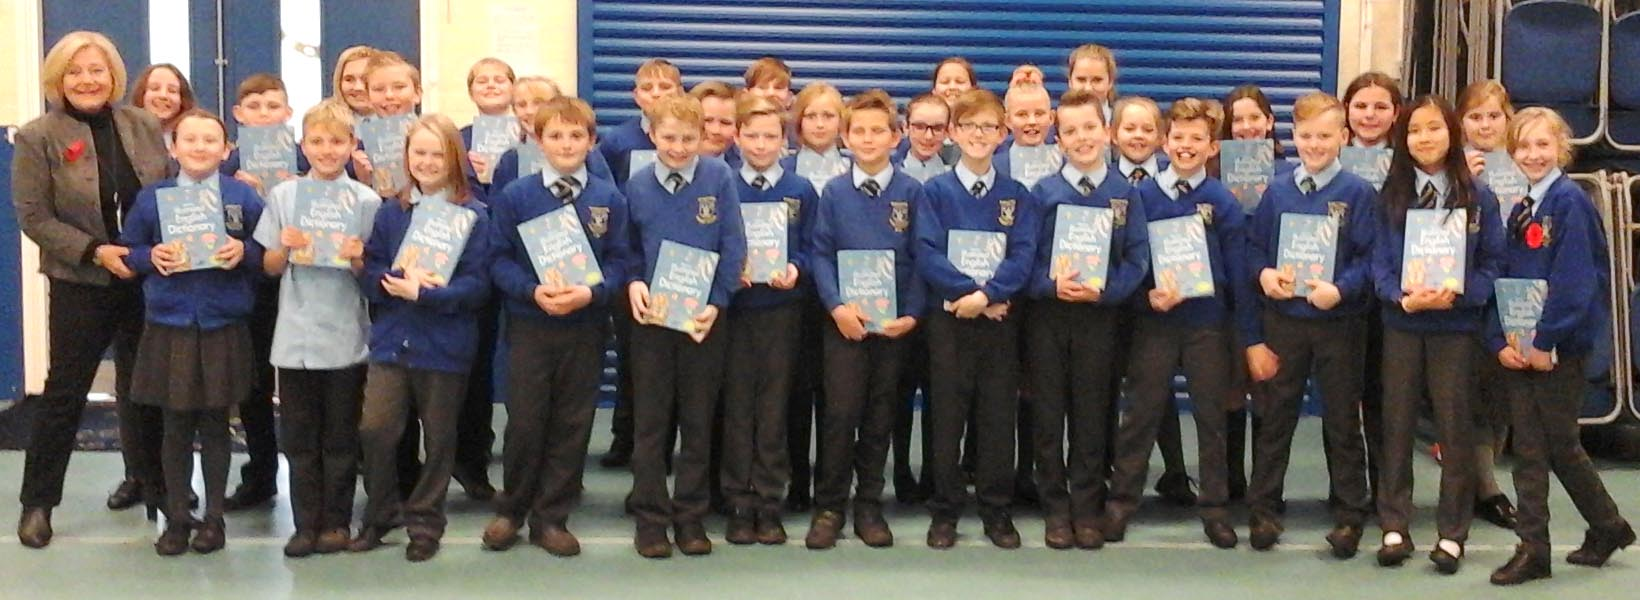 Free Dictionaries for Year 6